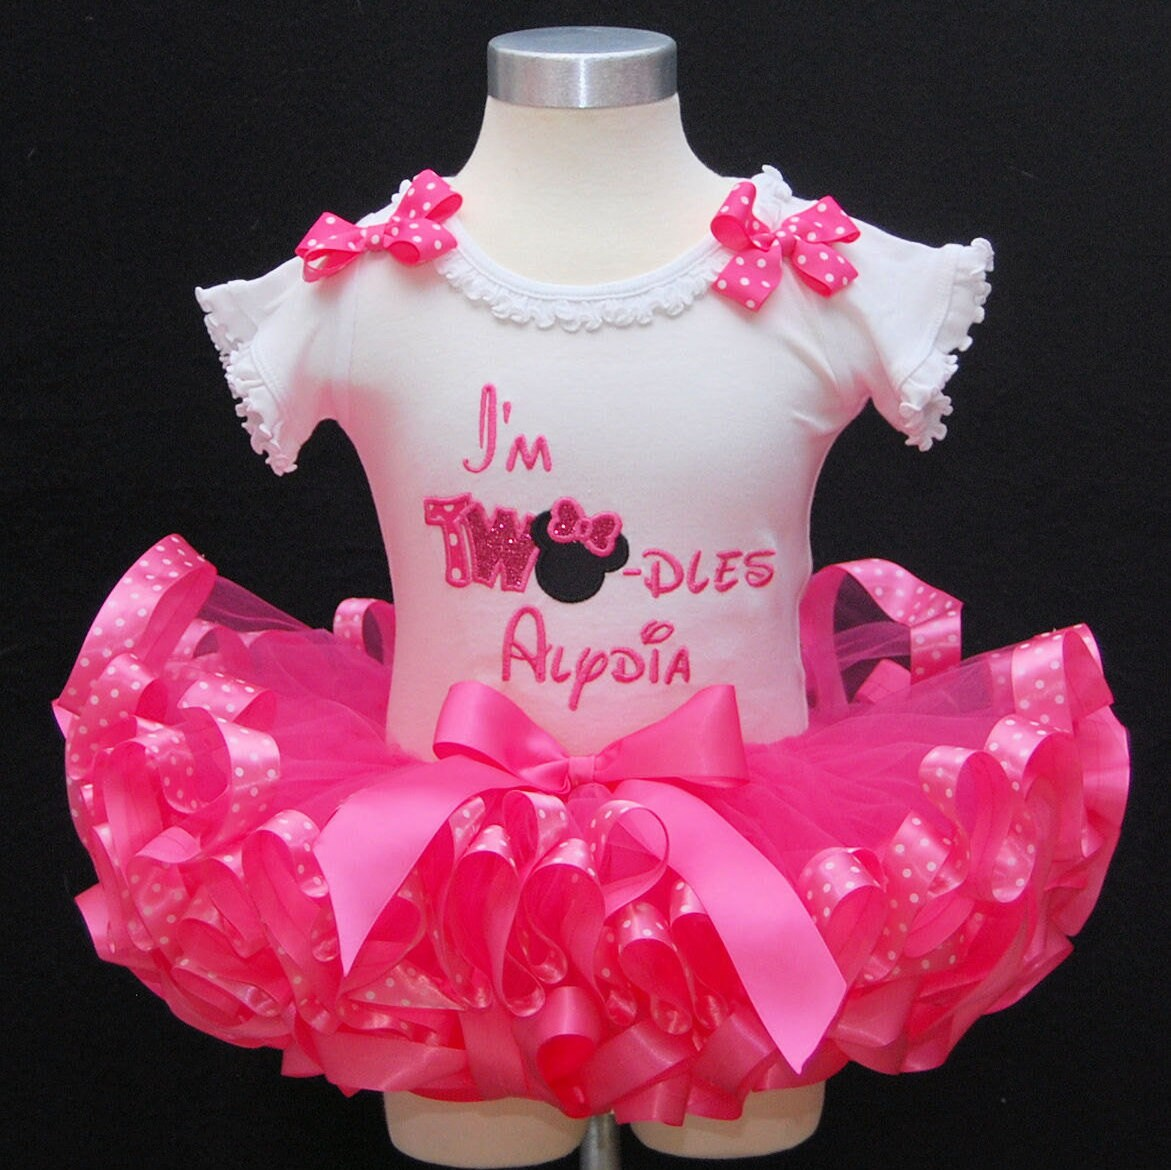 2nd  Birthday Tutu Outfit, Minnie Mouse tutu outfit, I'm Twodles, birthday tutu outfit, cake smash, personalized, ribbon trim tutu outfit